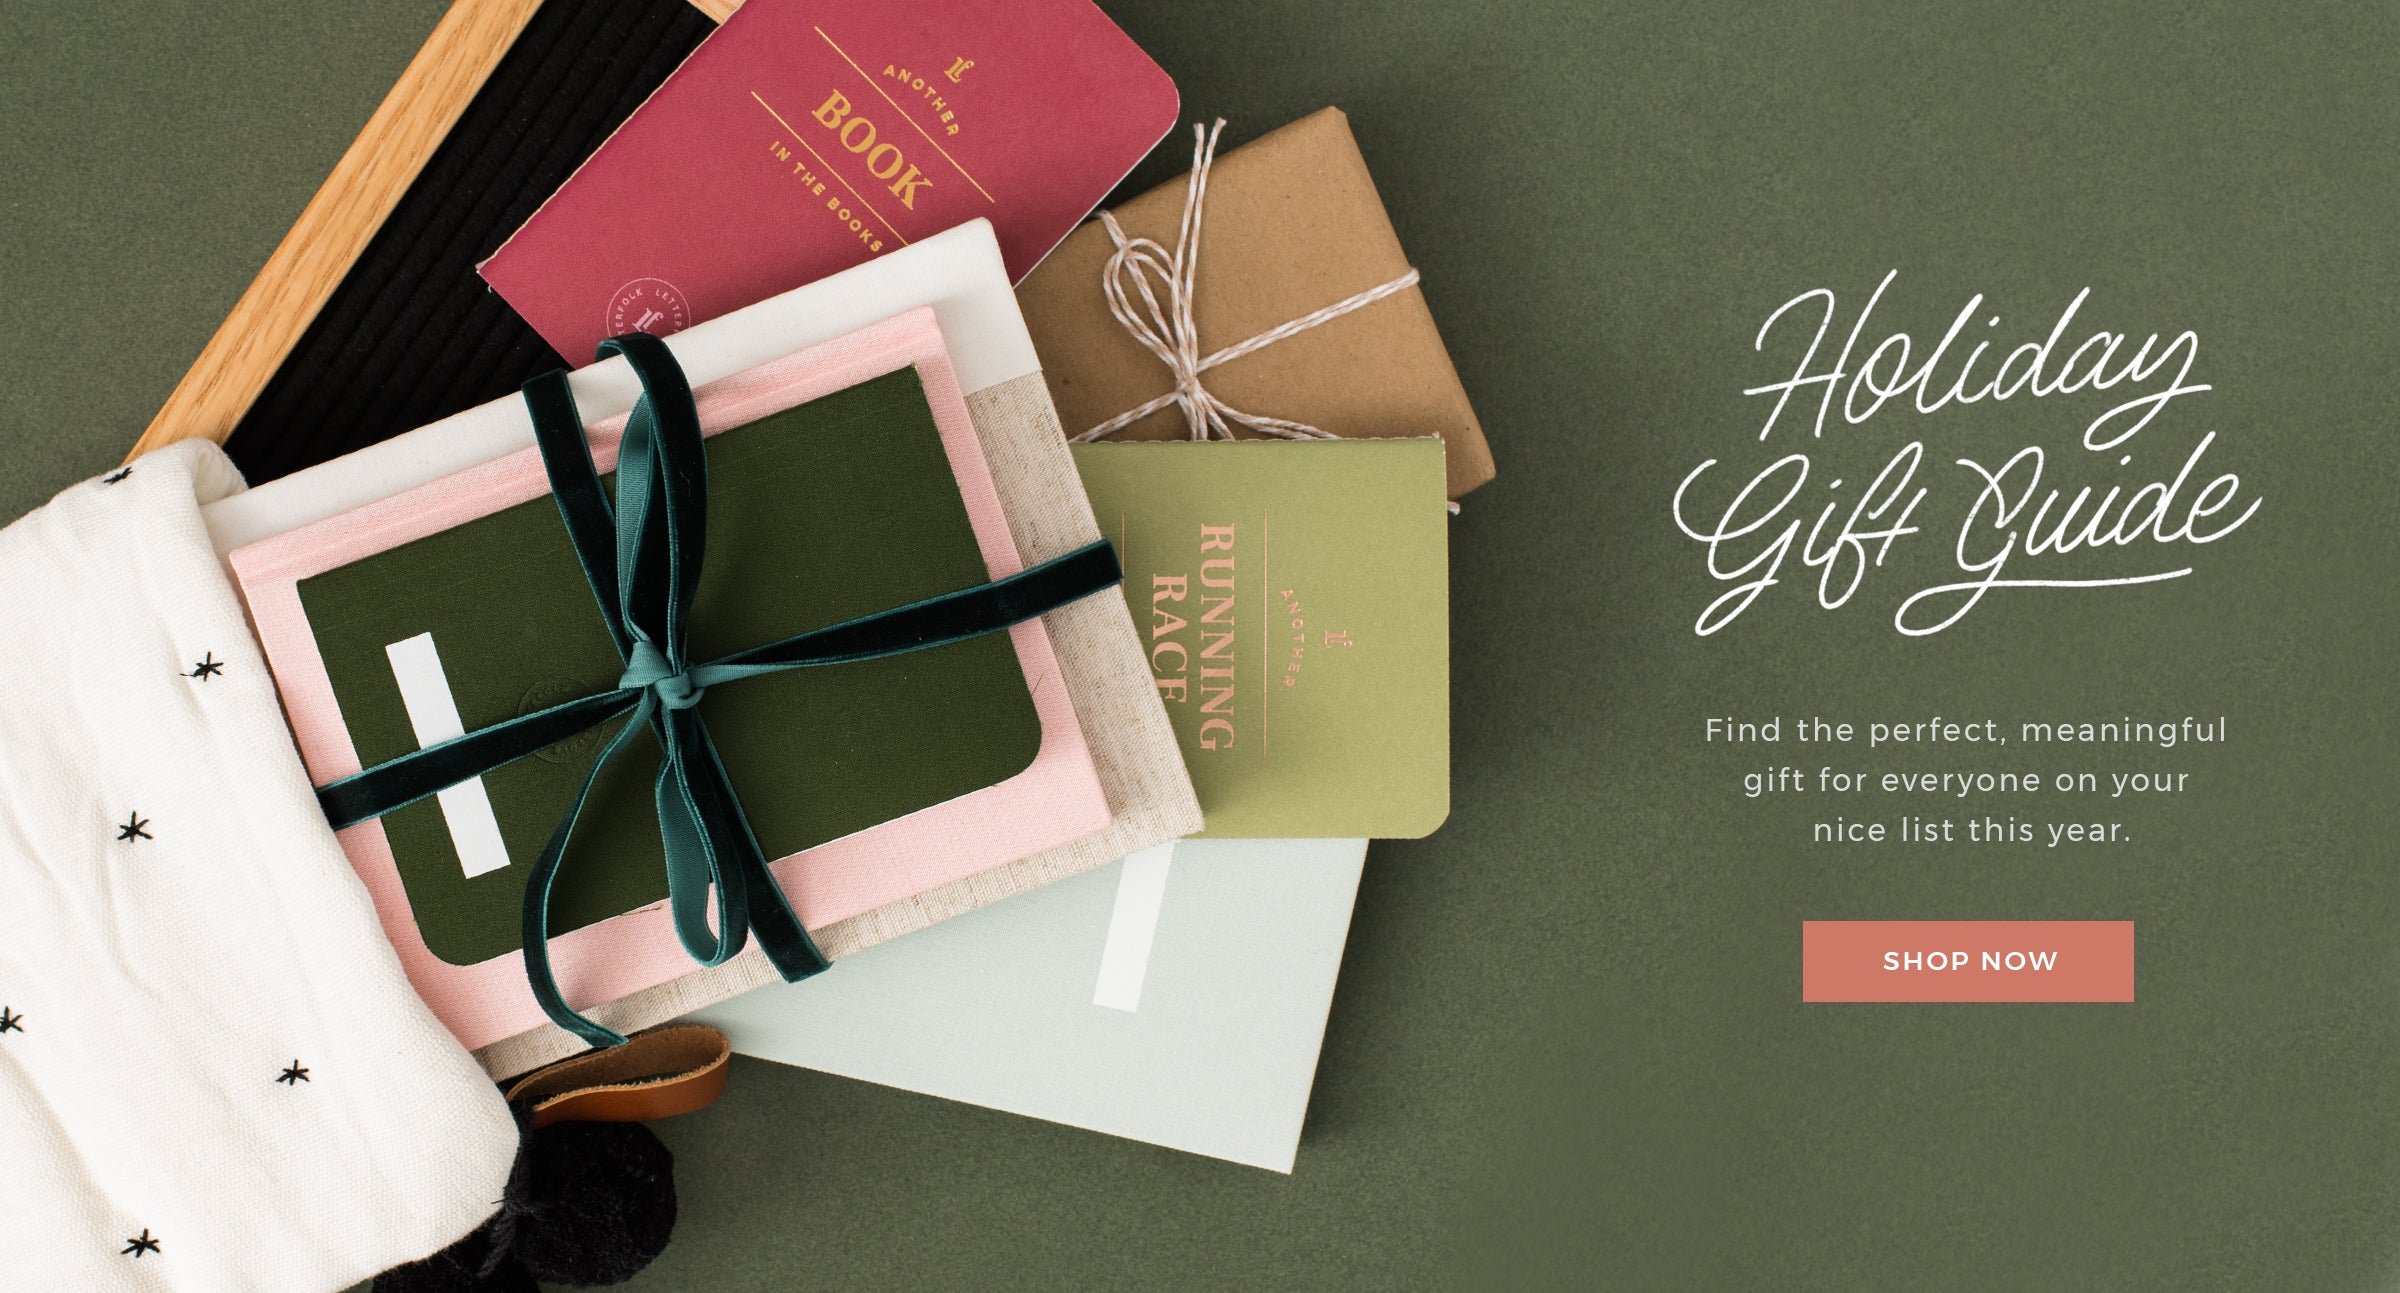 Letterfolk Holiday Gift Guide